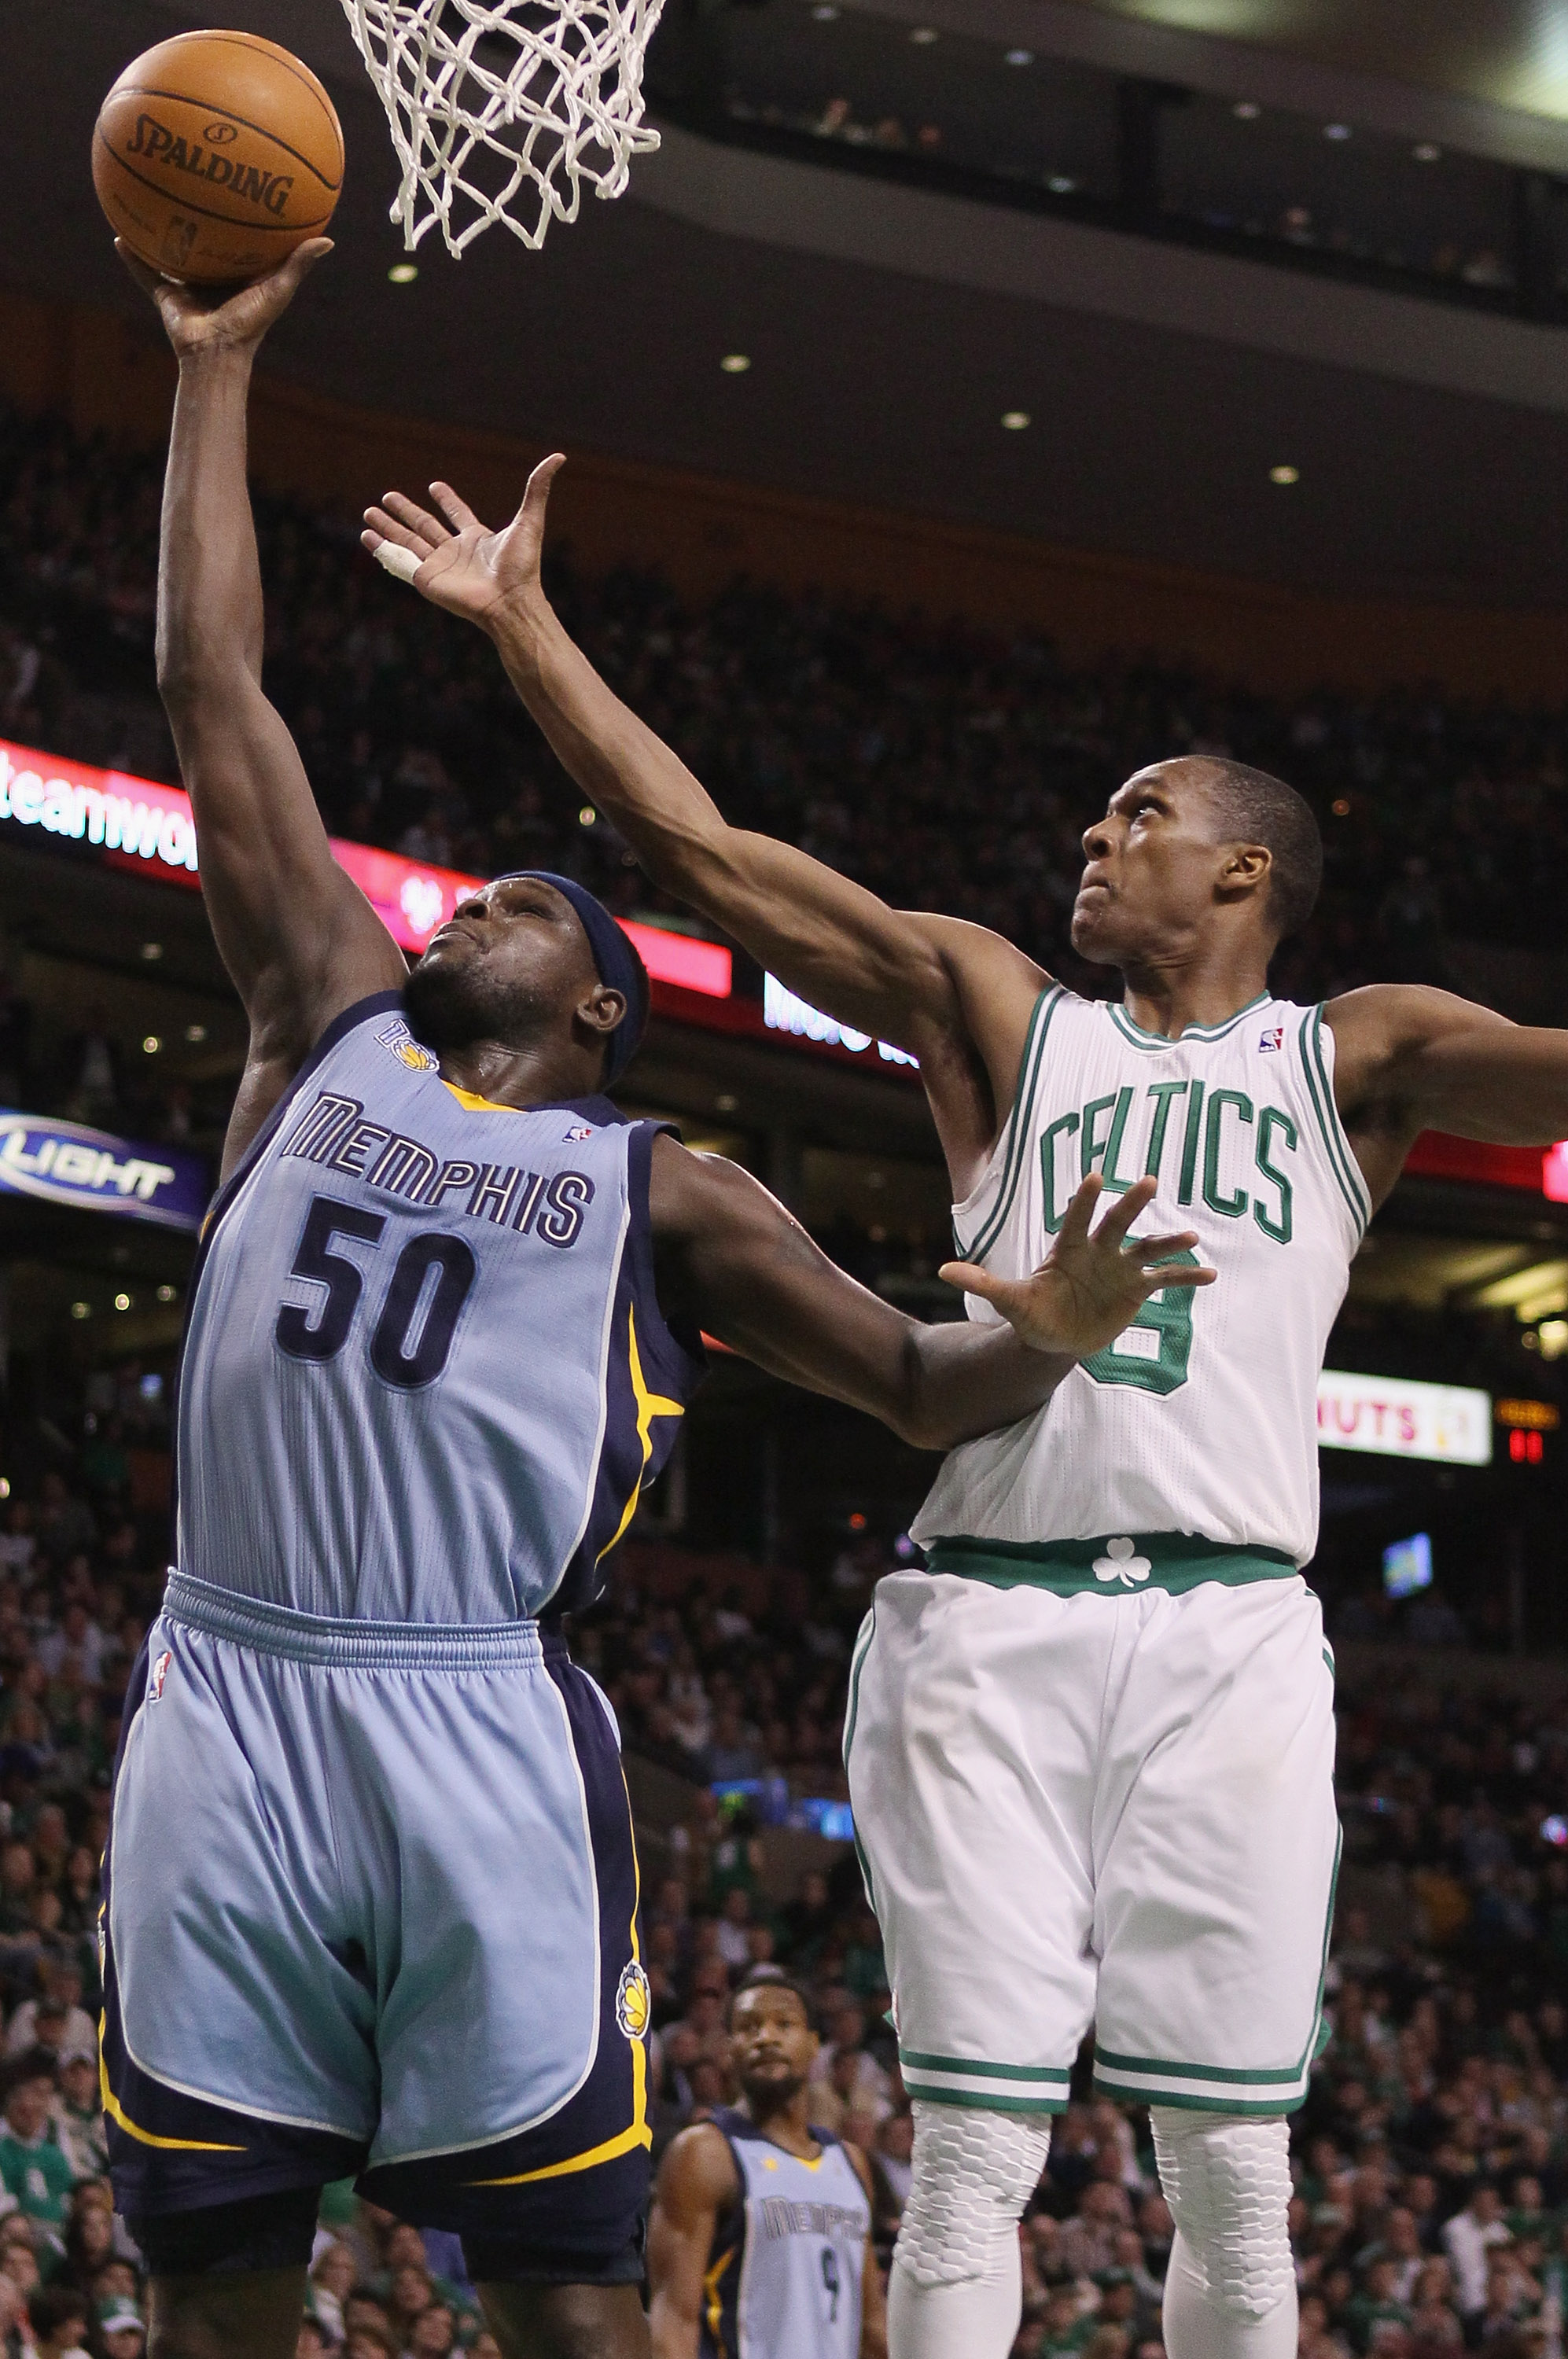 BOSTON, MA - MARCH 23:  Zach Randolph #50 of the Memphis Grizzlies takes a shot as Rajon Rondo #9 of the Boston Celtics defends on March 23, 2011 at the TD Garden in Boston, Massachusetts.  NOTE TO USER: User expressly acknowledges and agrees that, by dow